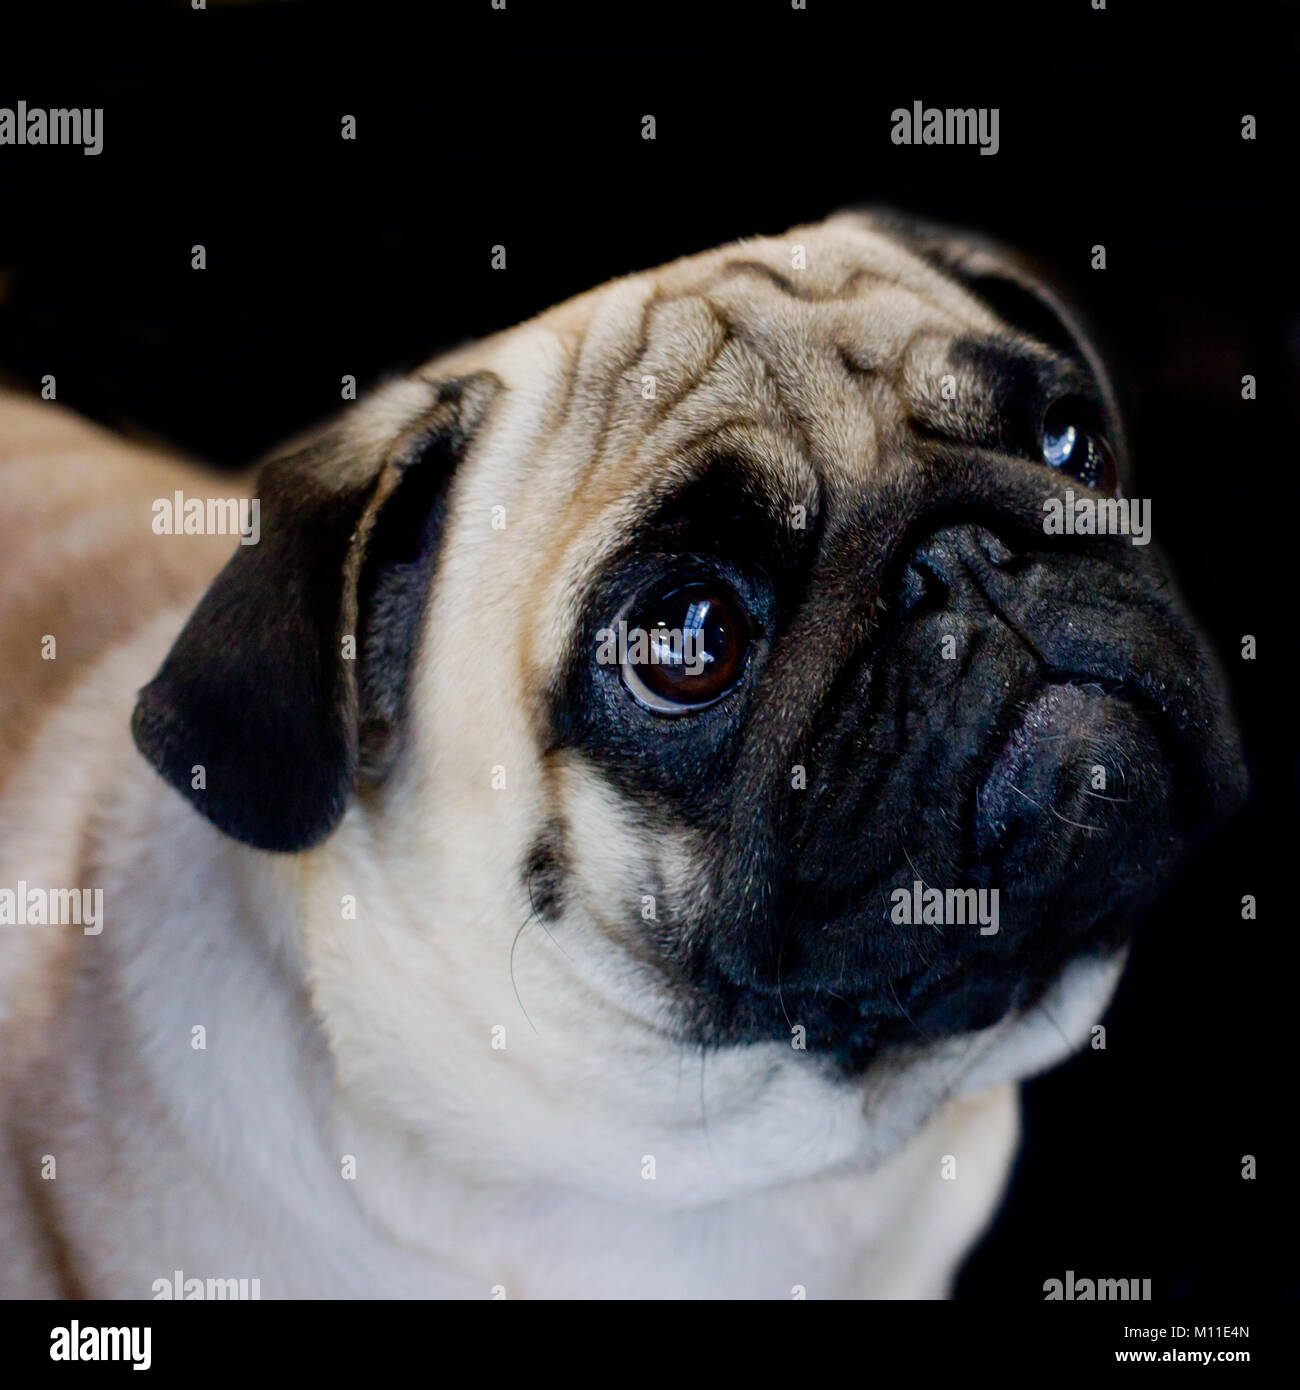 Pug dog close-up on black background, looking away - Stock Image